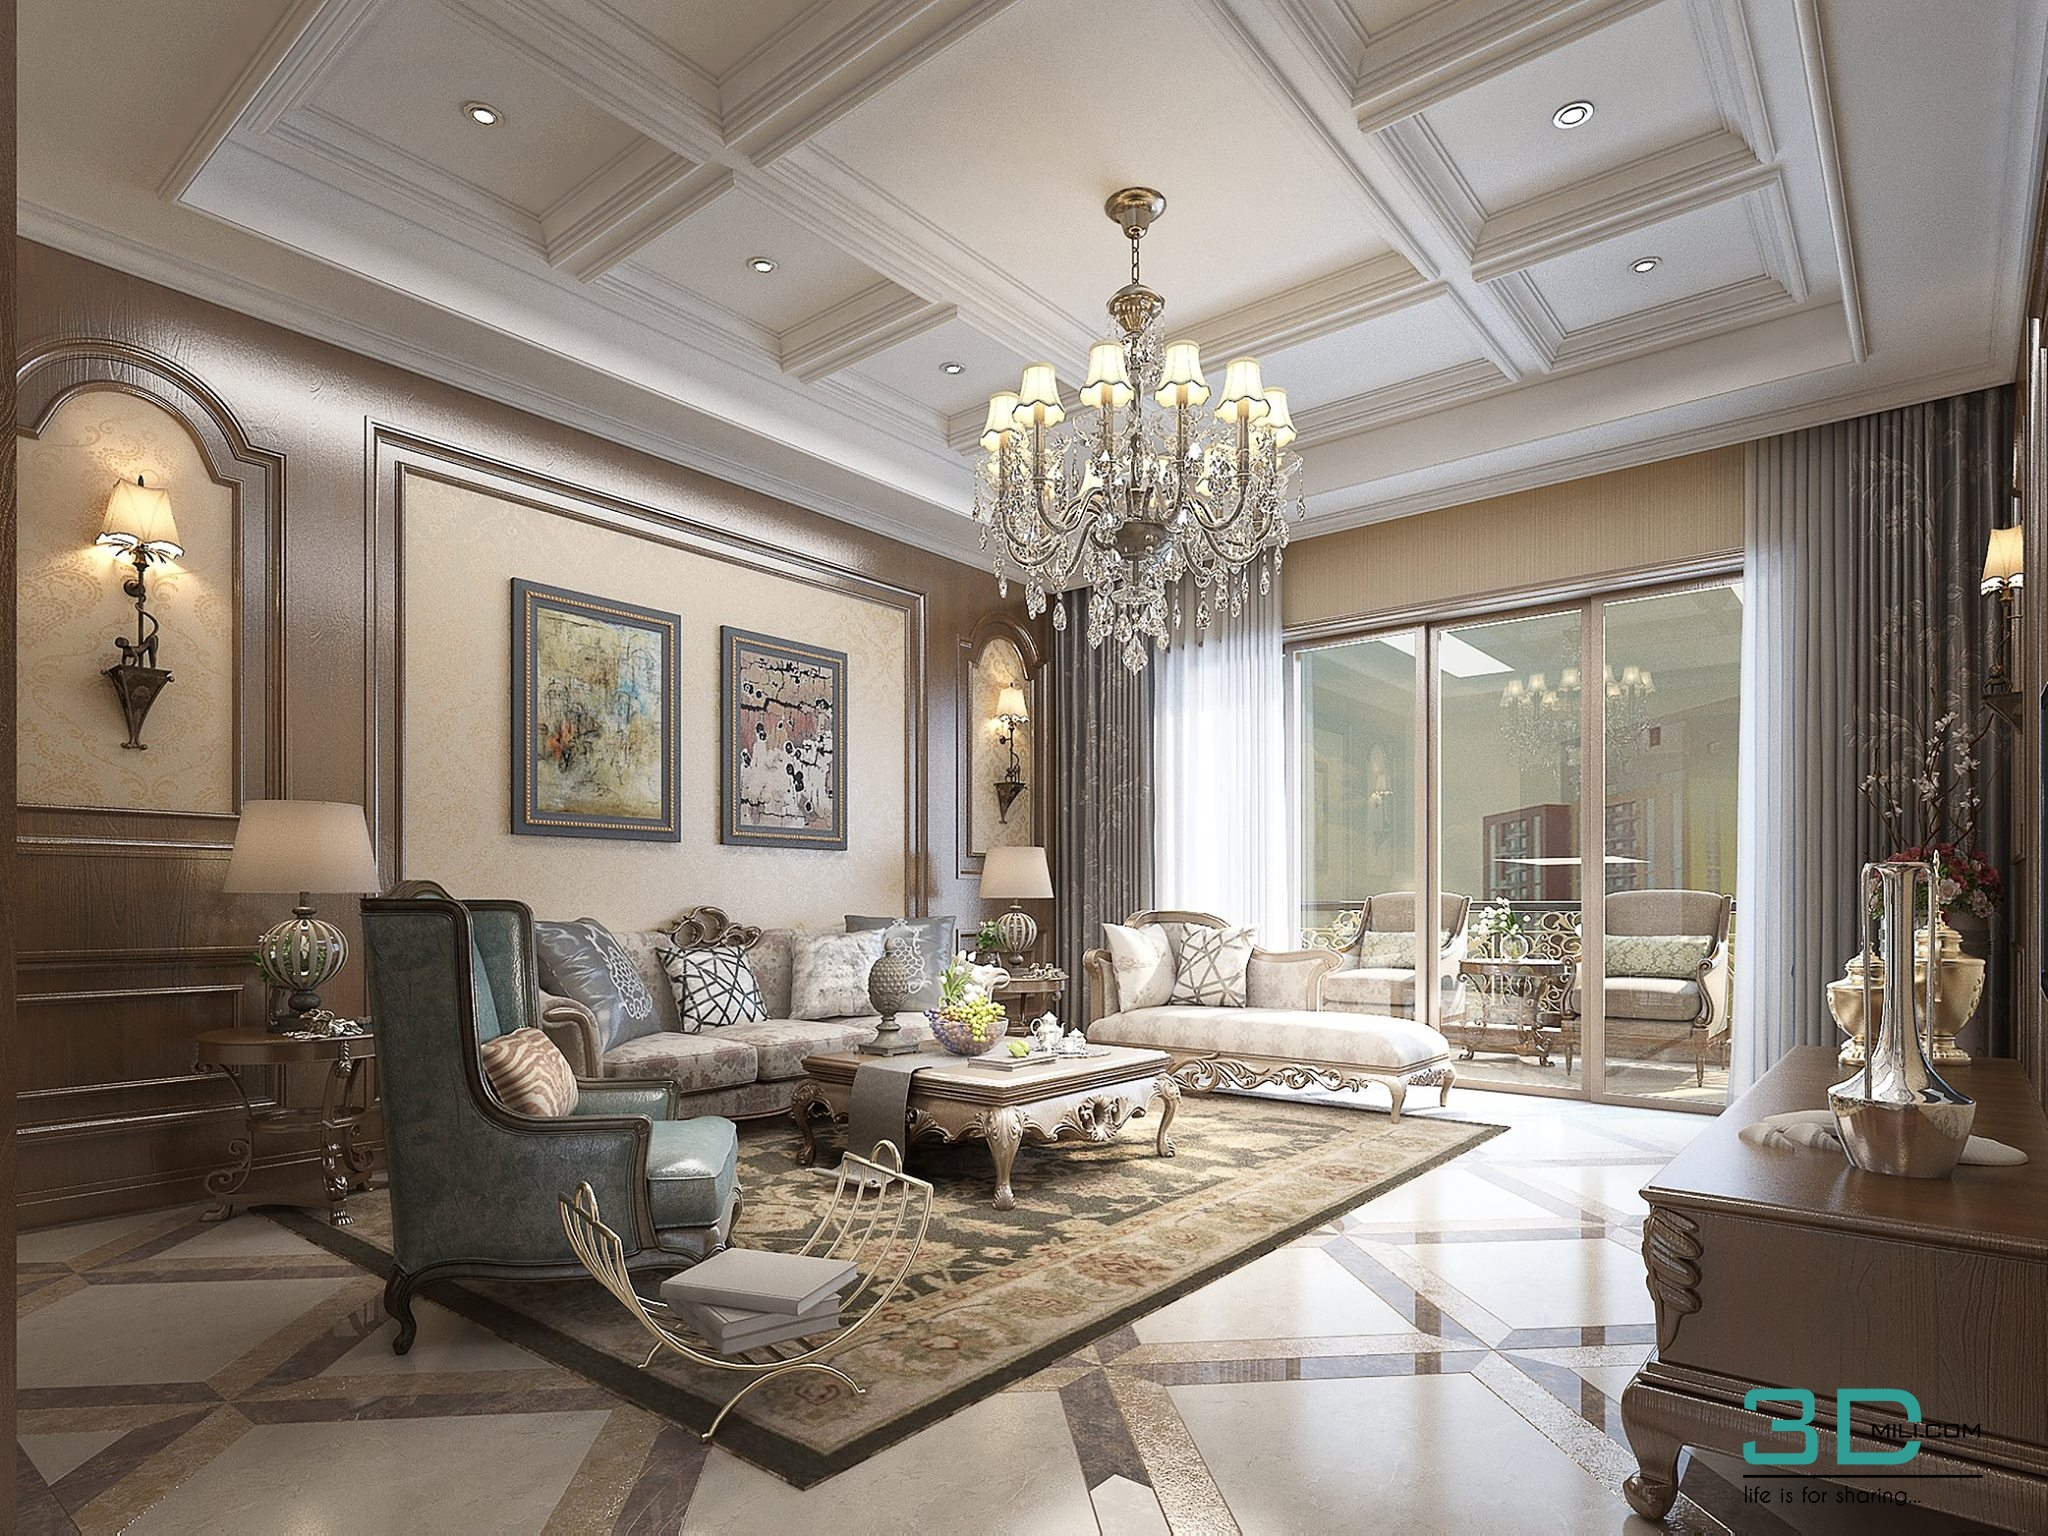 30  Living Room 30 3dsmax File Free Download - 3D Mili